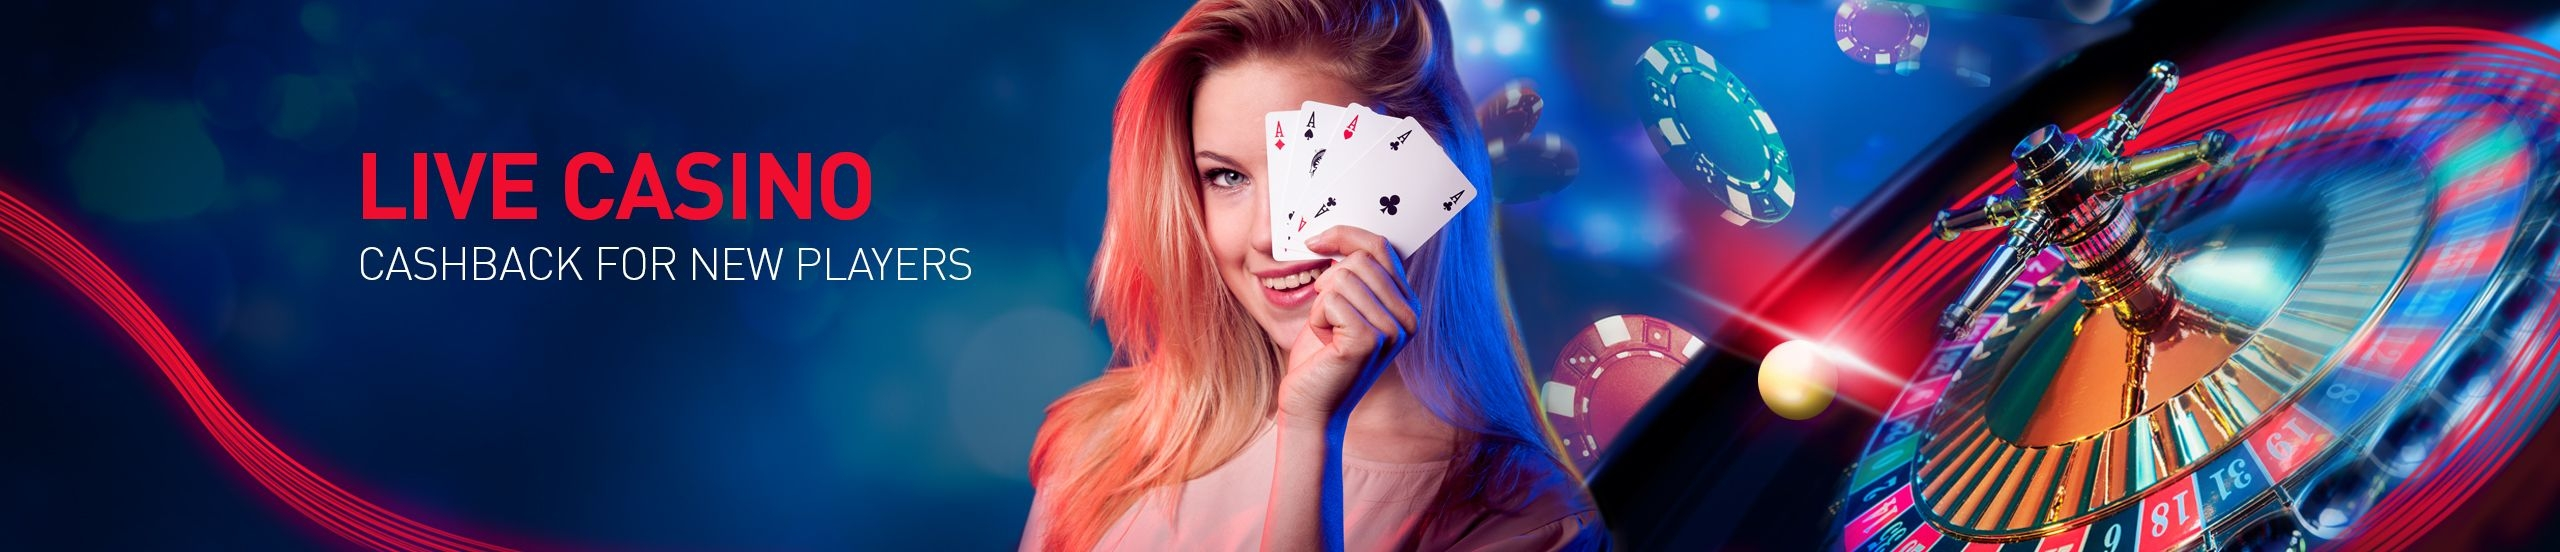 live poker indonesia (@janicelstroutha) Cover Image